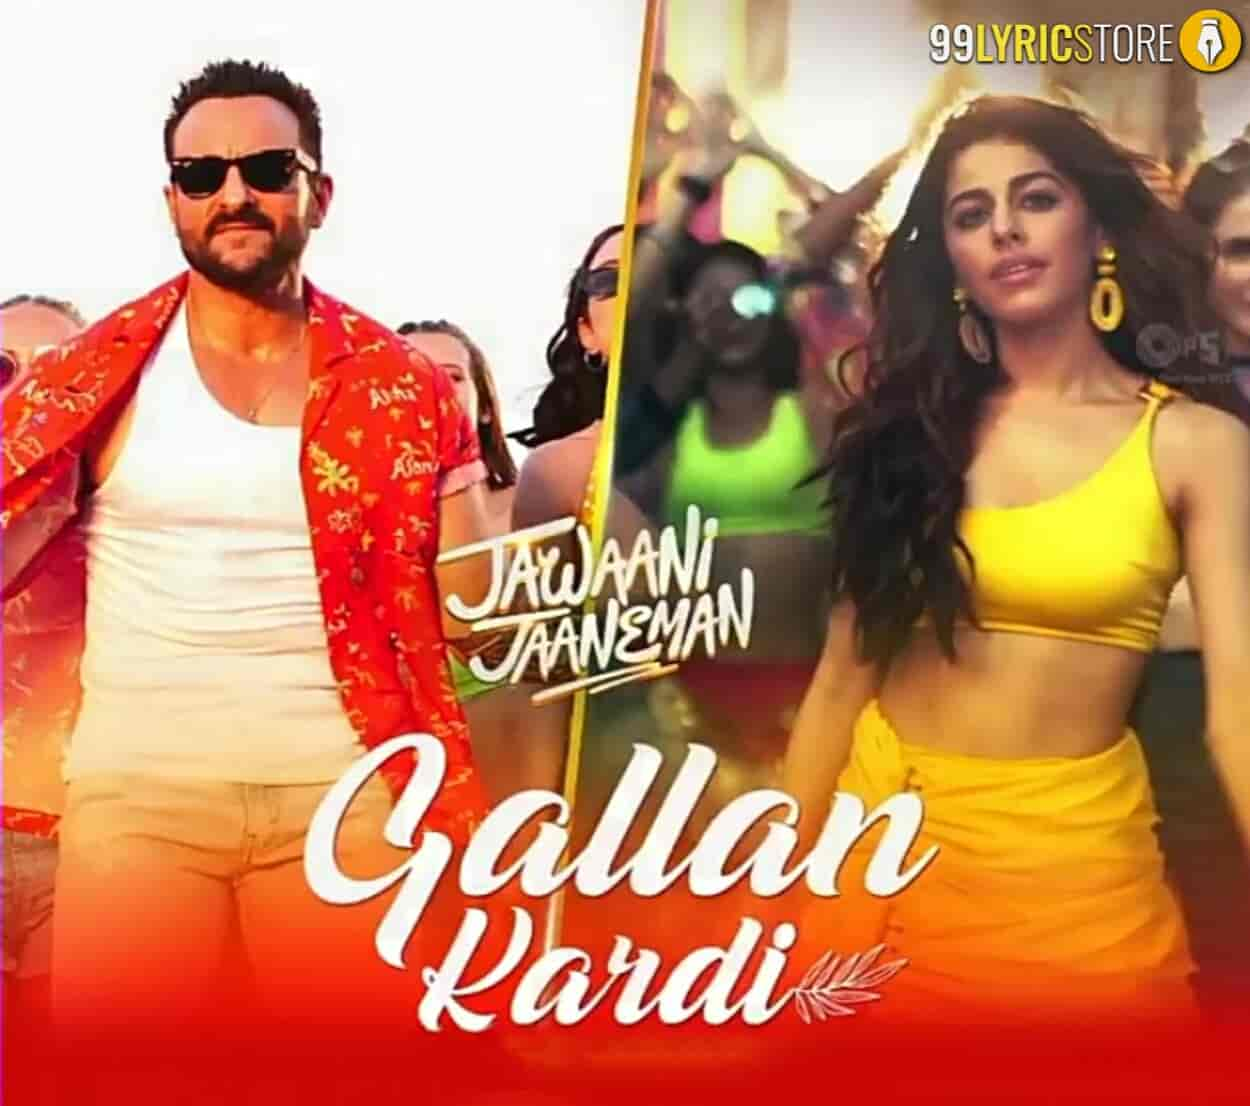 Gallan Kardi Song Images From Movie Jawaani Jaaneman